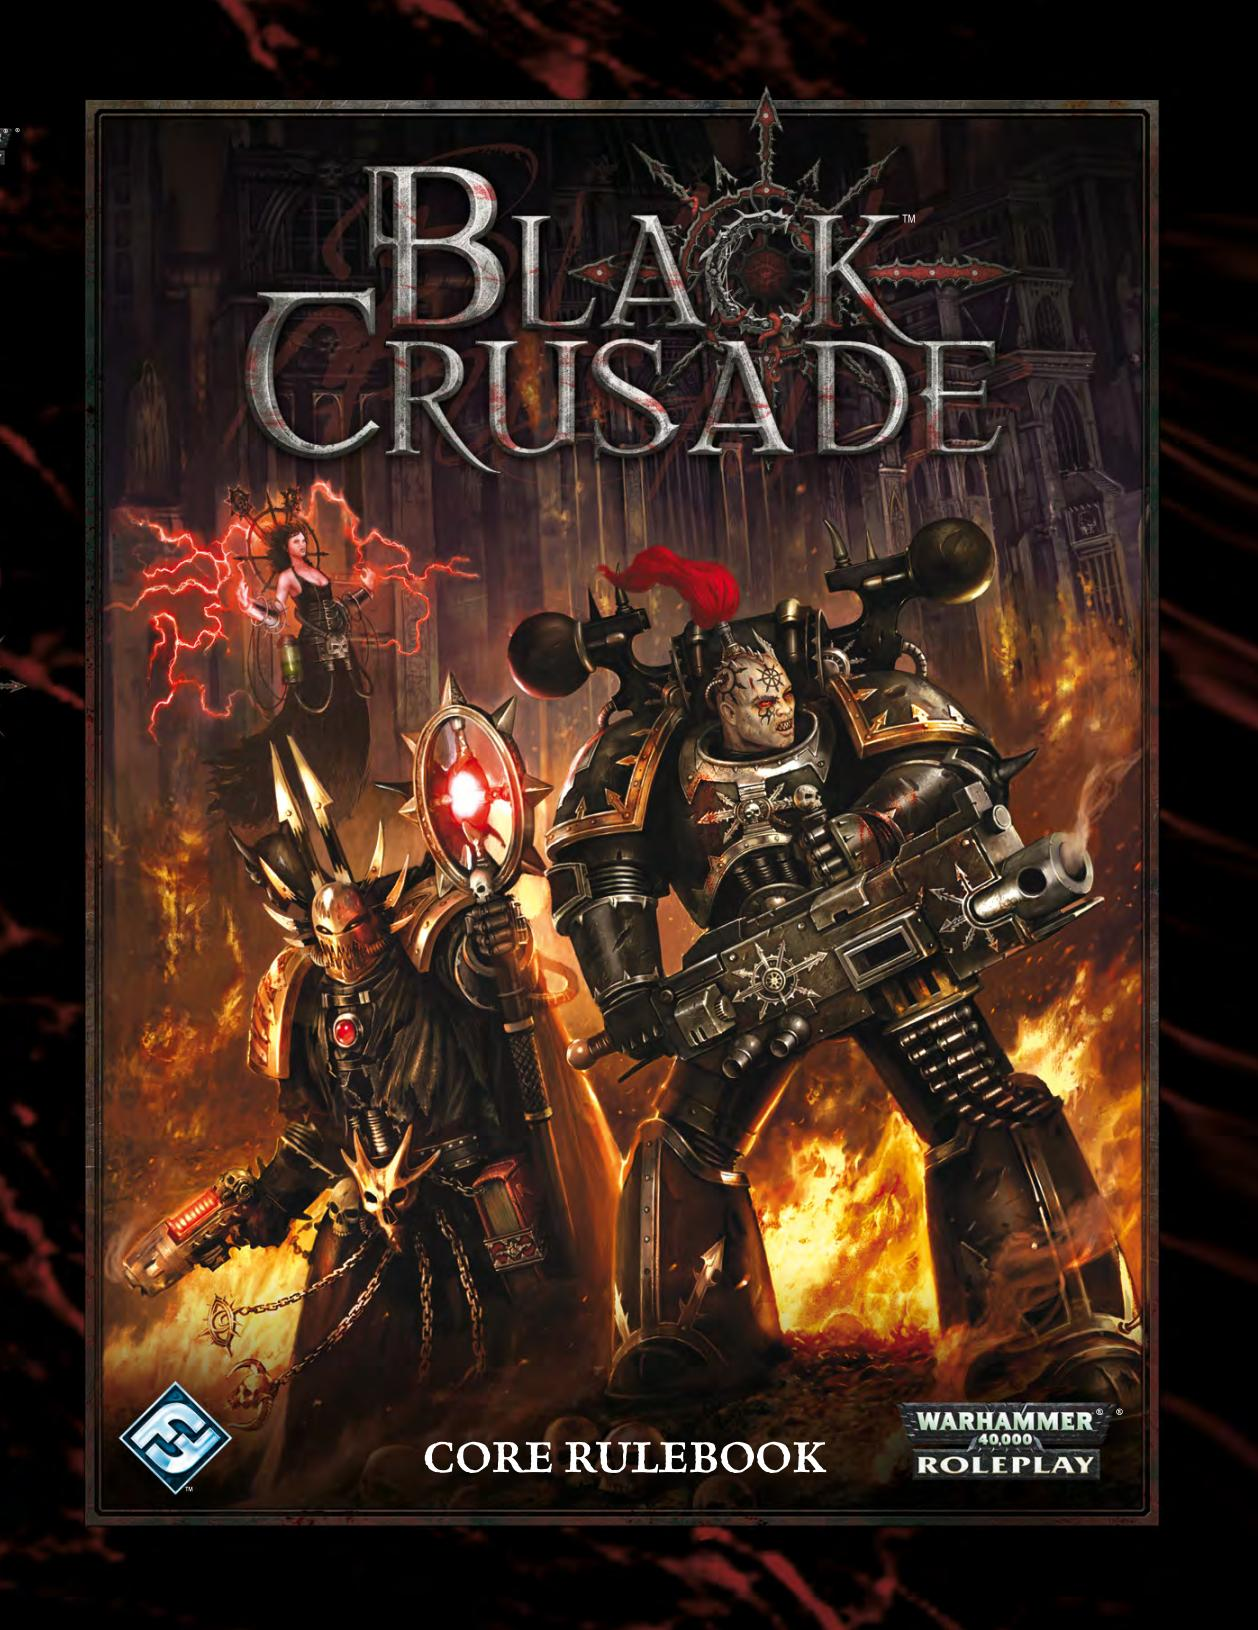 Black Crusade - Black Crusade Core Rulebook (Core) | 40k RPG Tools